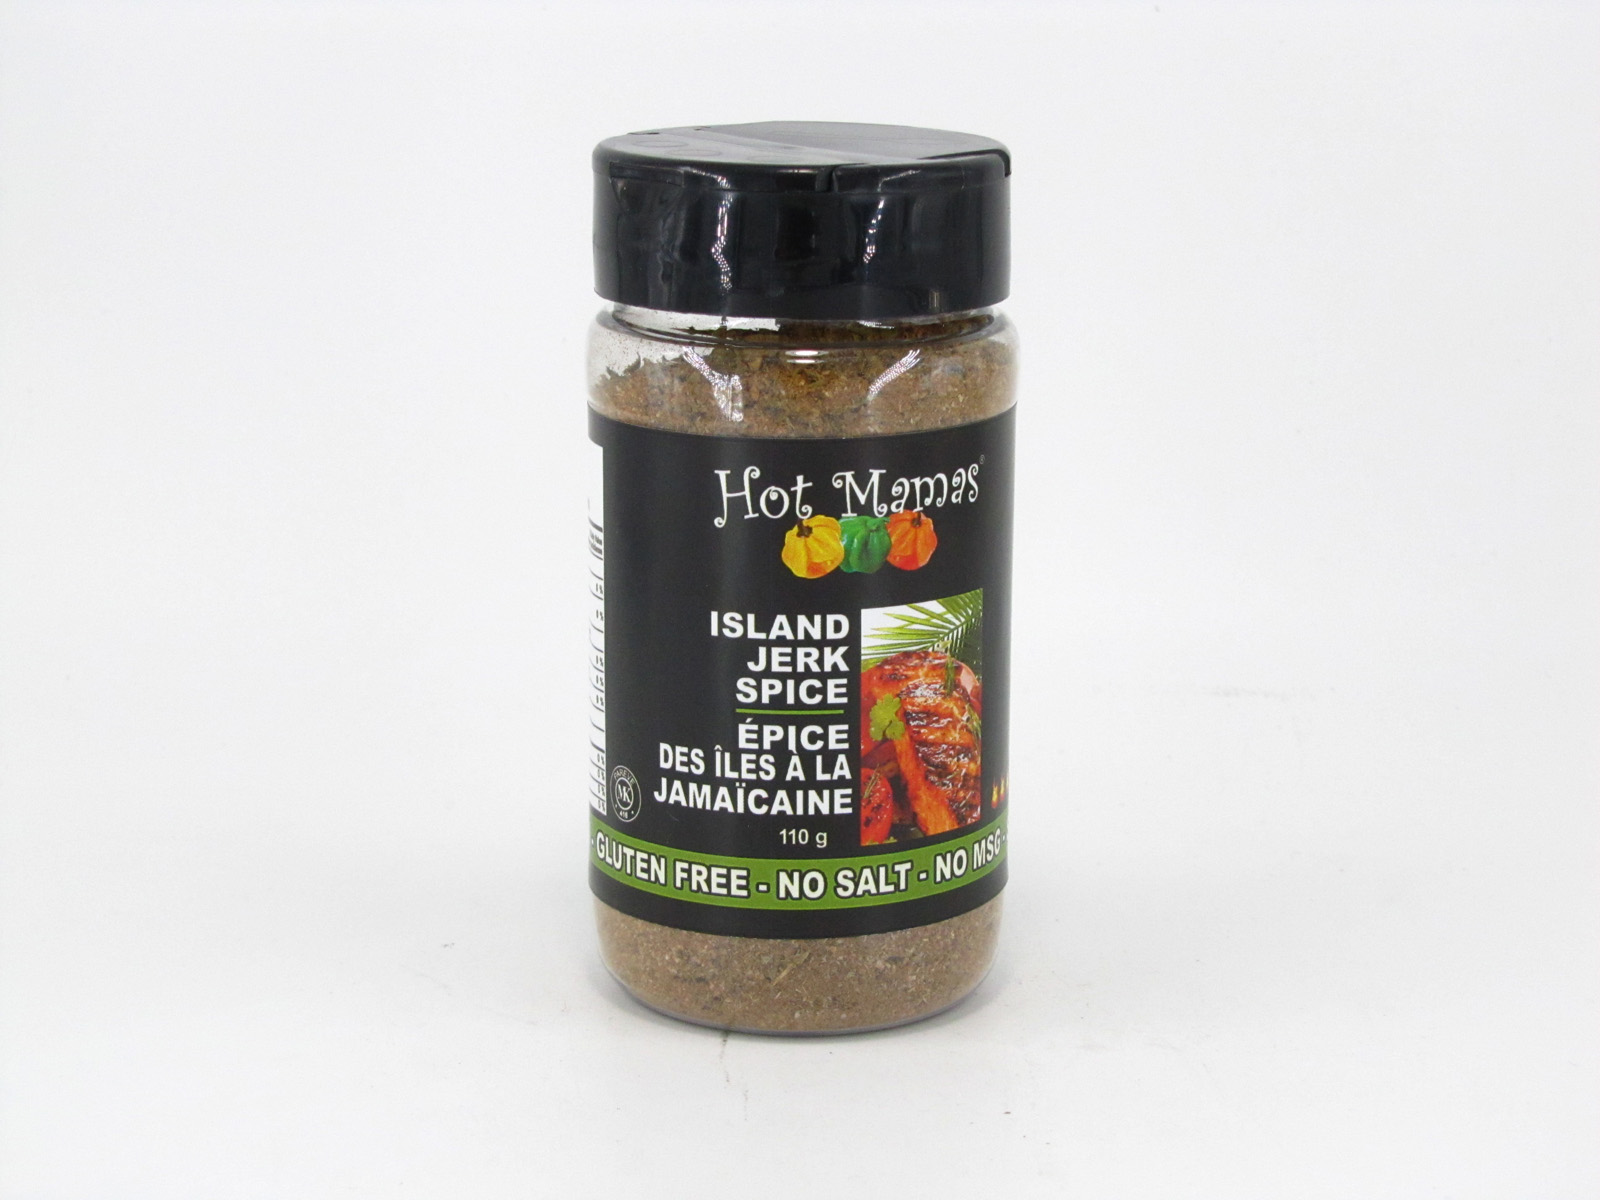 Hot Mamas Spice - Island Jerk - front view